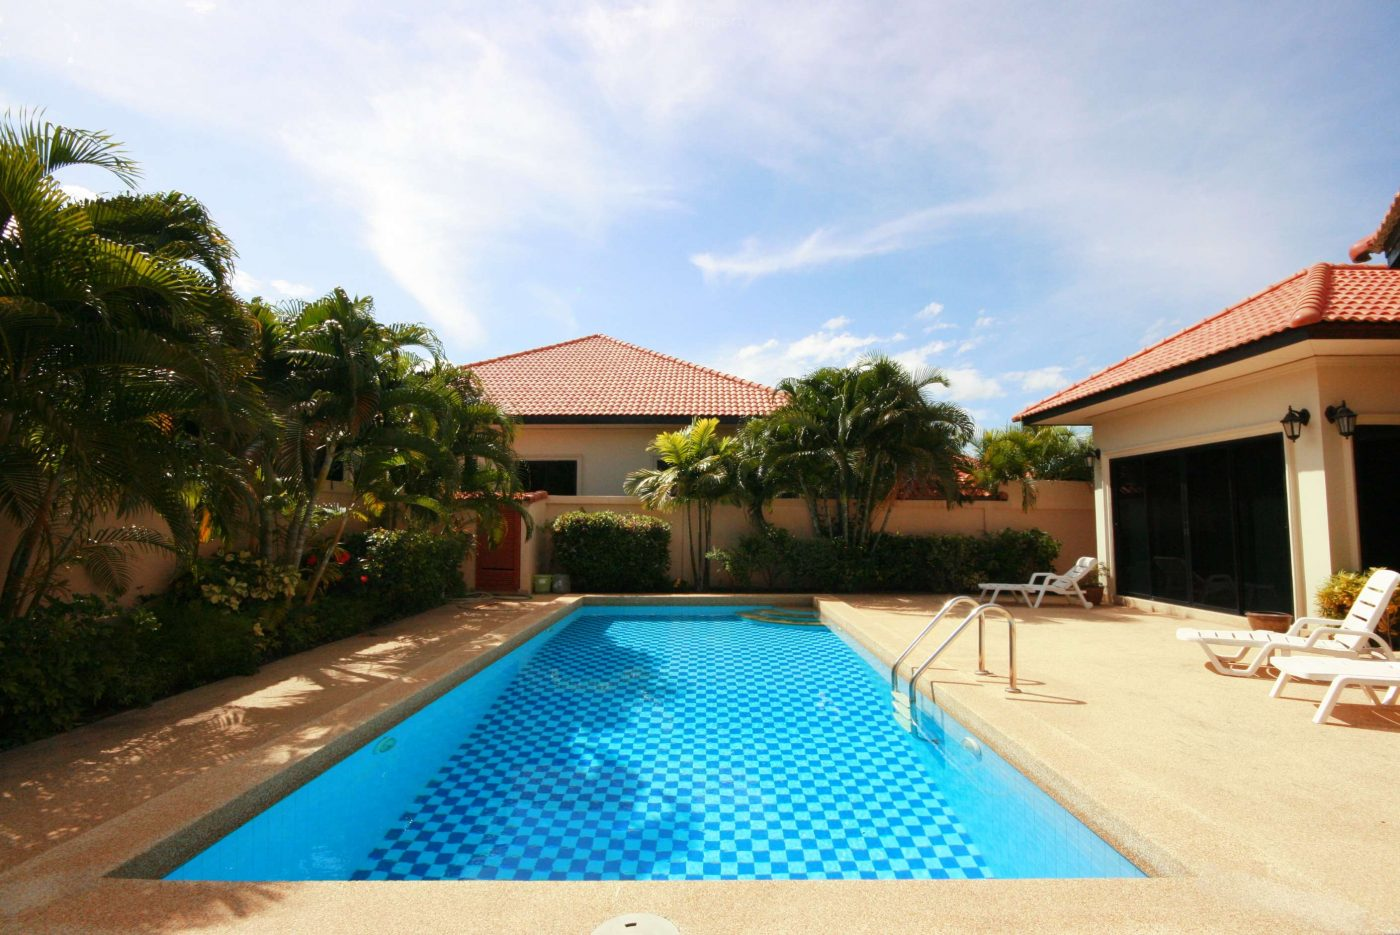 Beautiful Pool Villa at Soi 114 for Rent at Beautiful Pool Villa at Soi 114